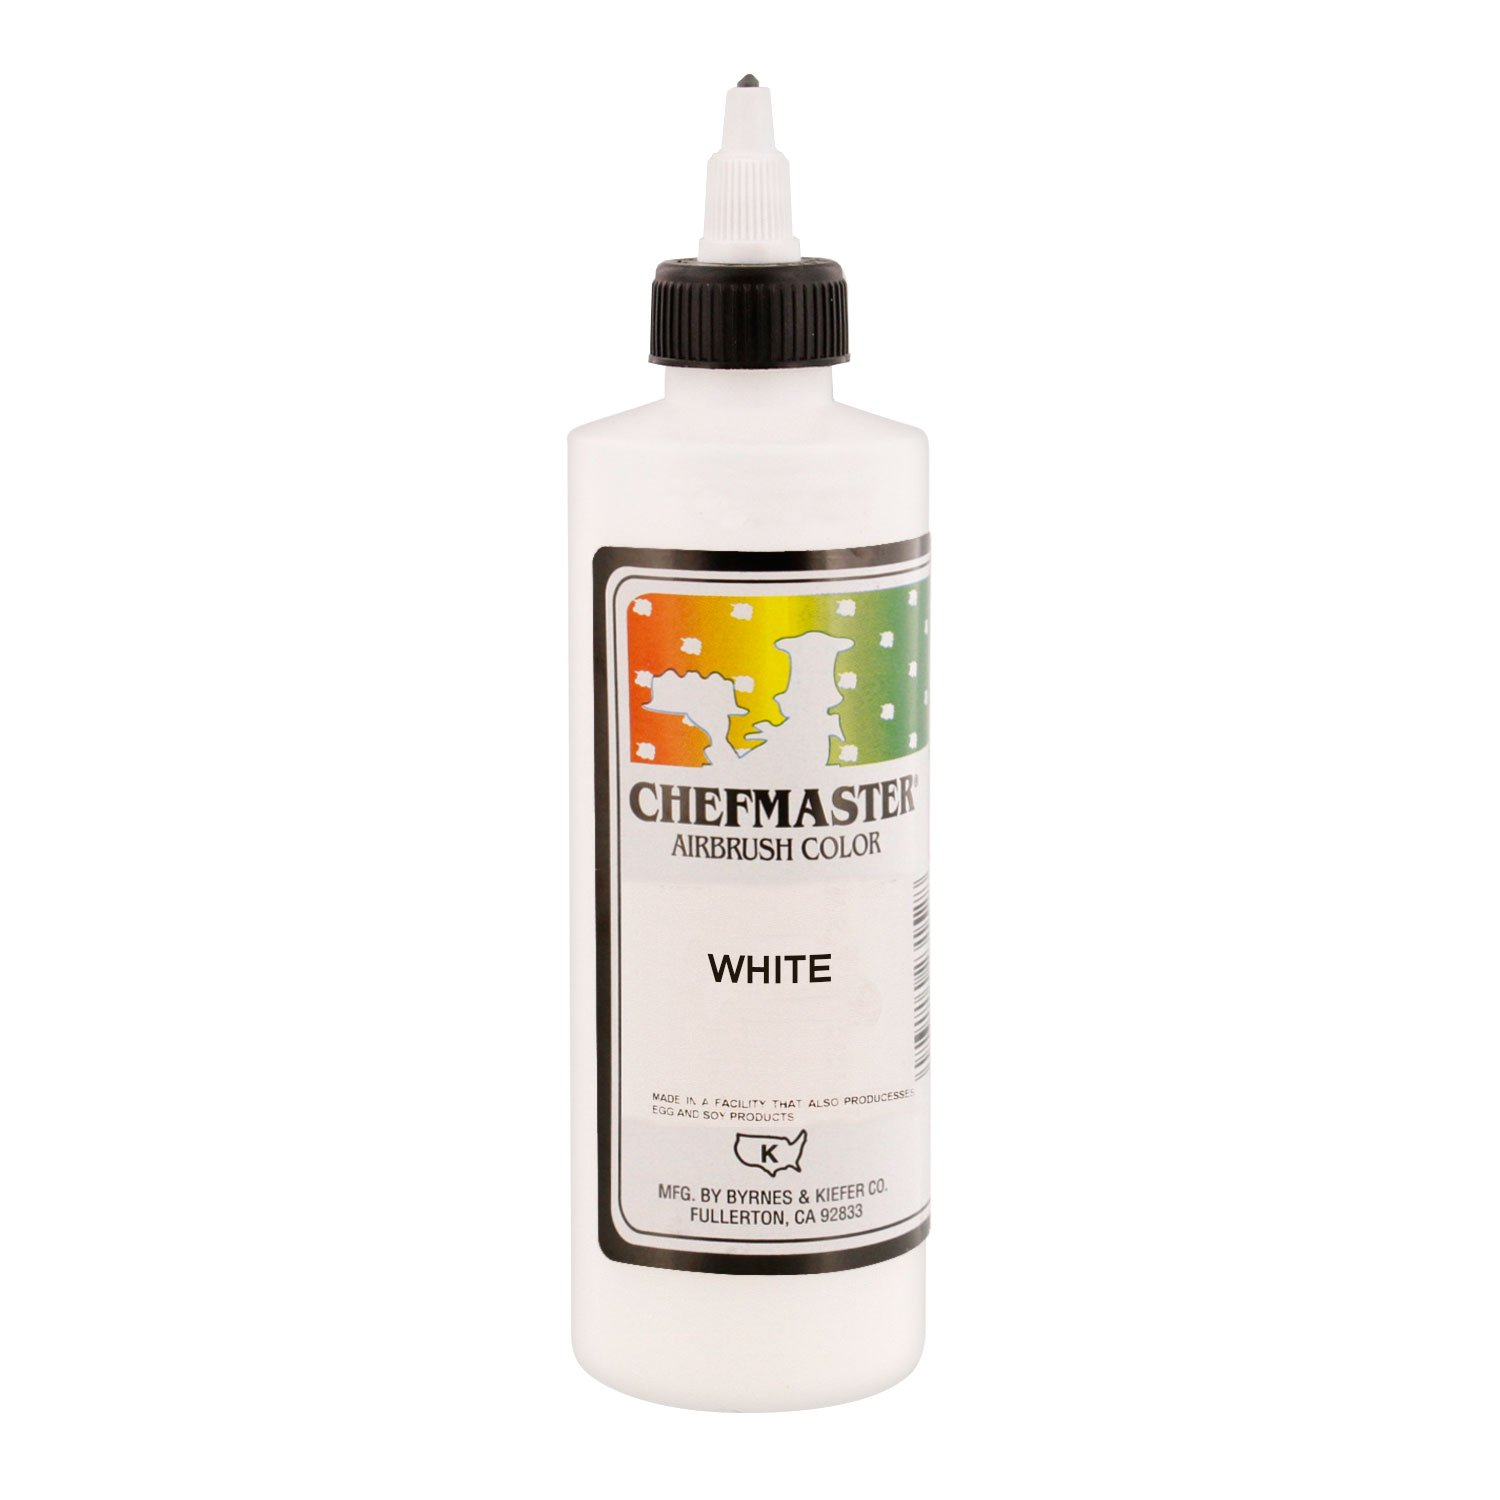 Chefmaster by US Cake Supply 9-Ounce Airbrush Cake Food Color White by U.S. Cake Supply